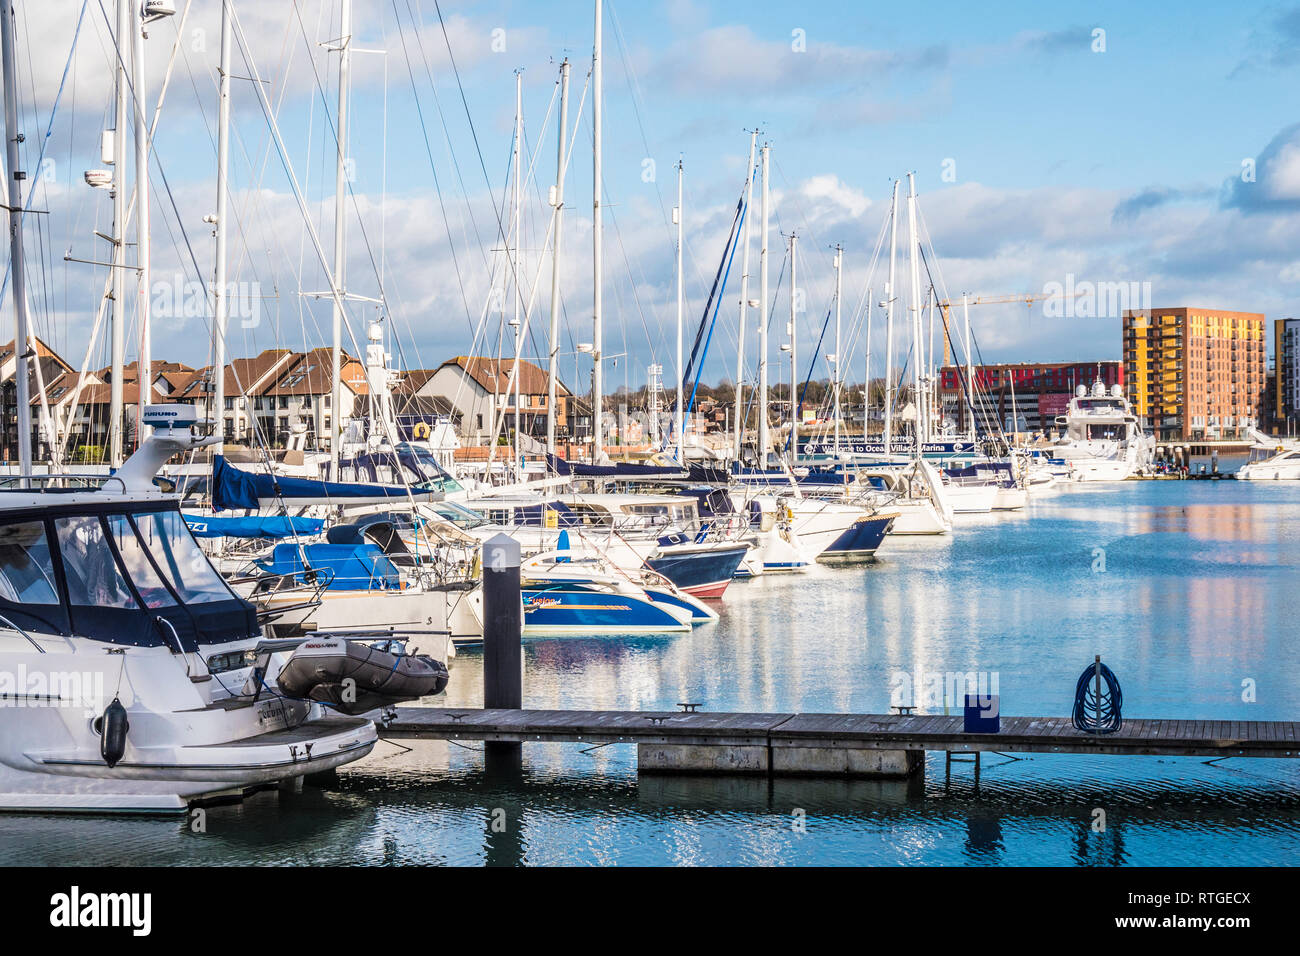 The Ocean Village Marina and Centenary Quay in Southampton, UK. Stock Photo